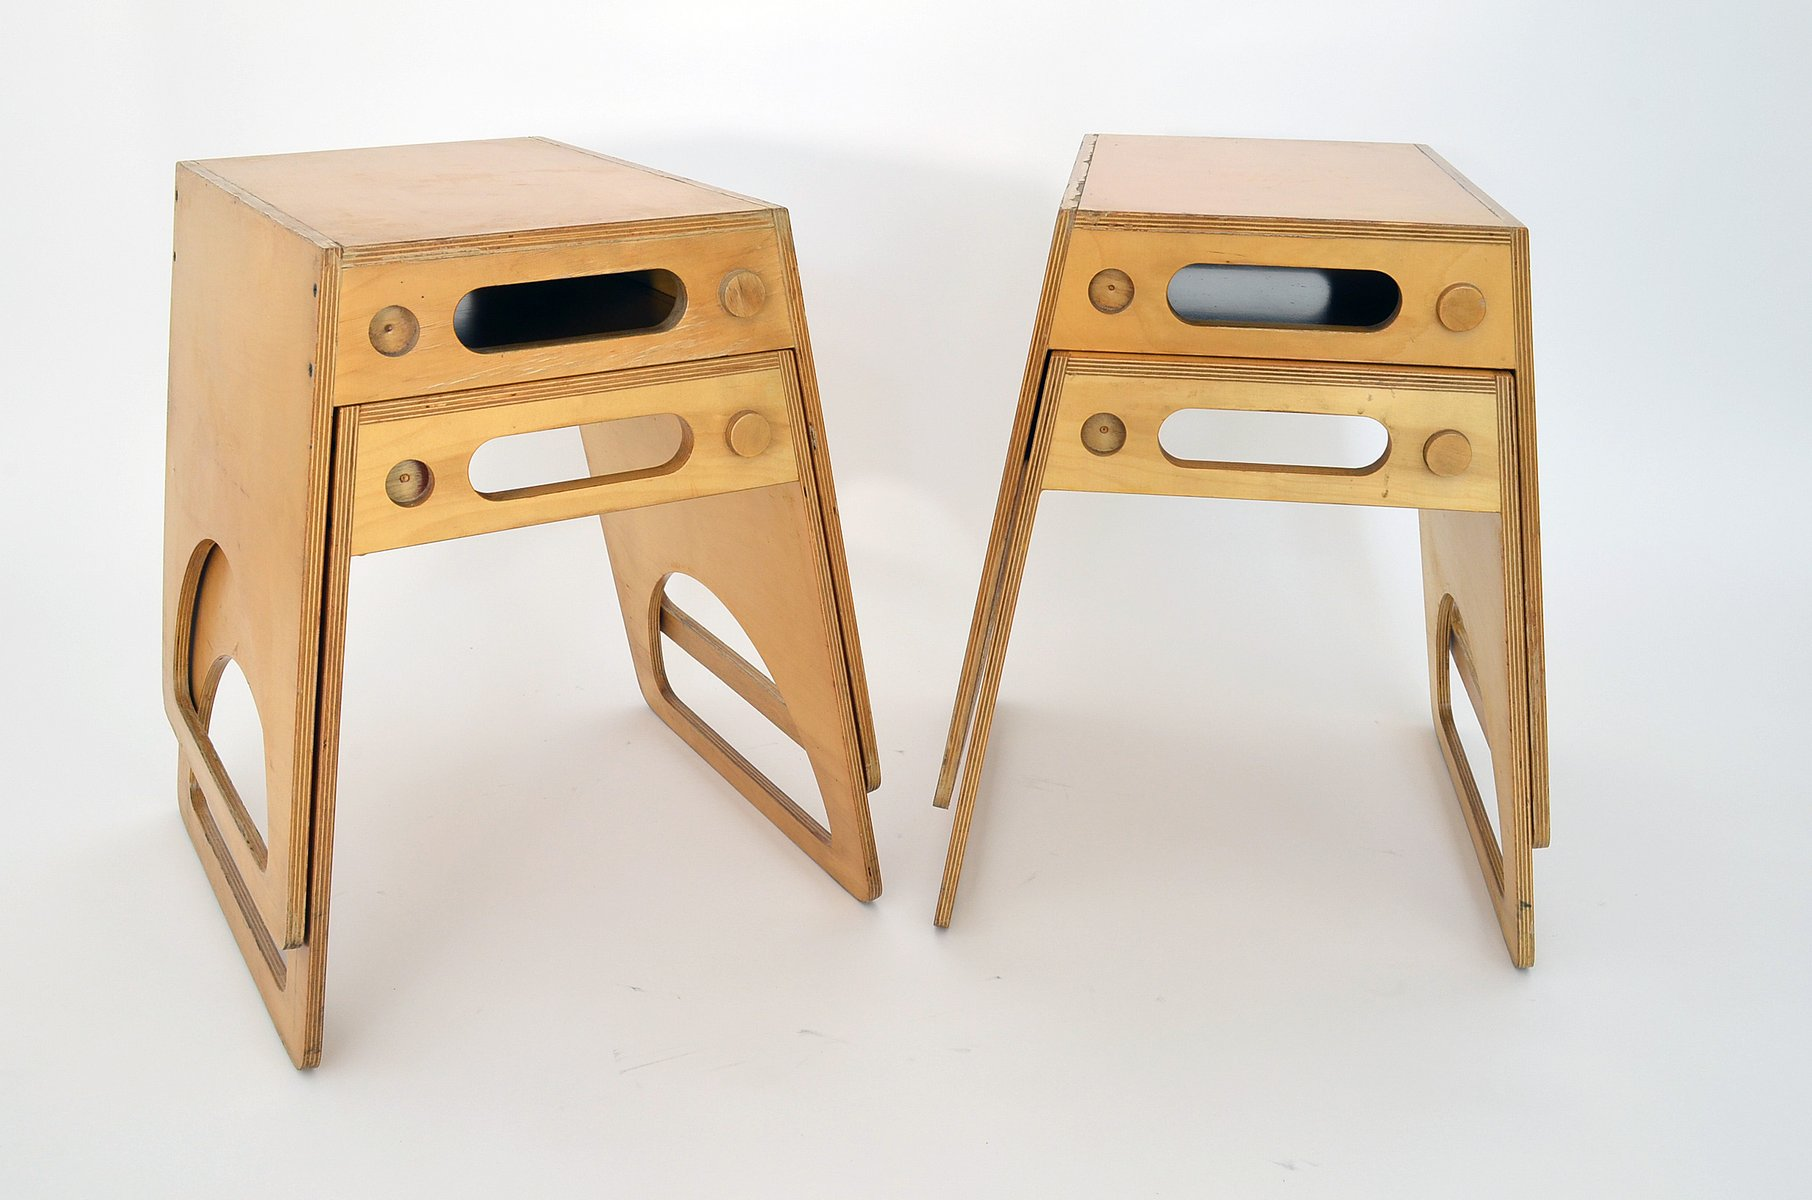 vintage stackable stools in plywood by alberto paoli set of  for  - vintage stackable stools in plywood by alberto paoli set of